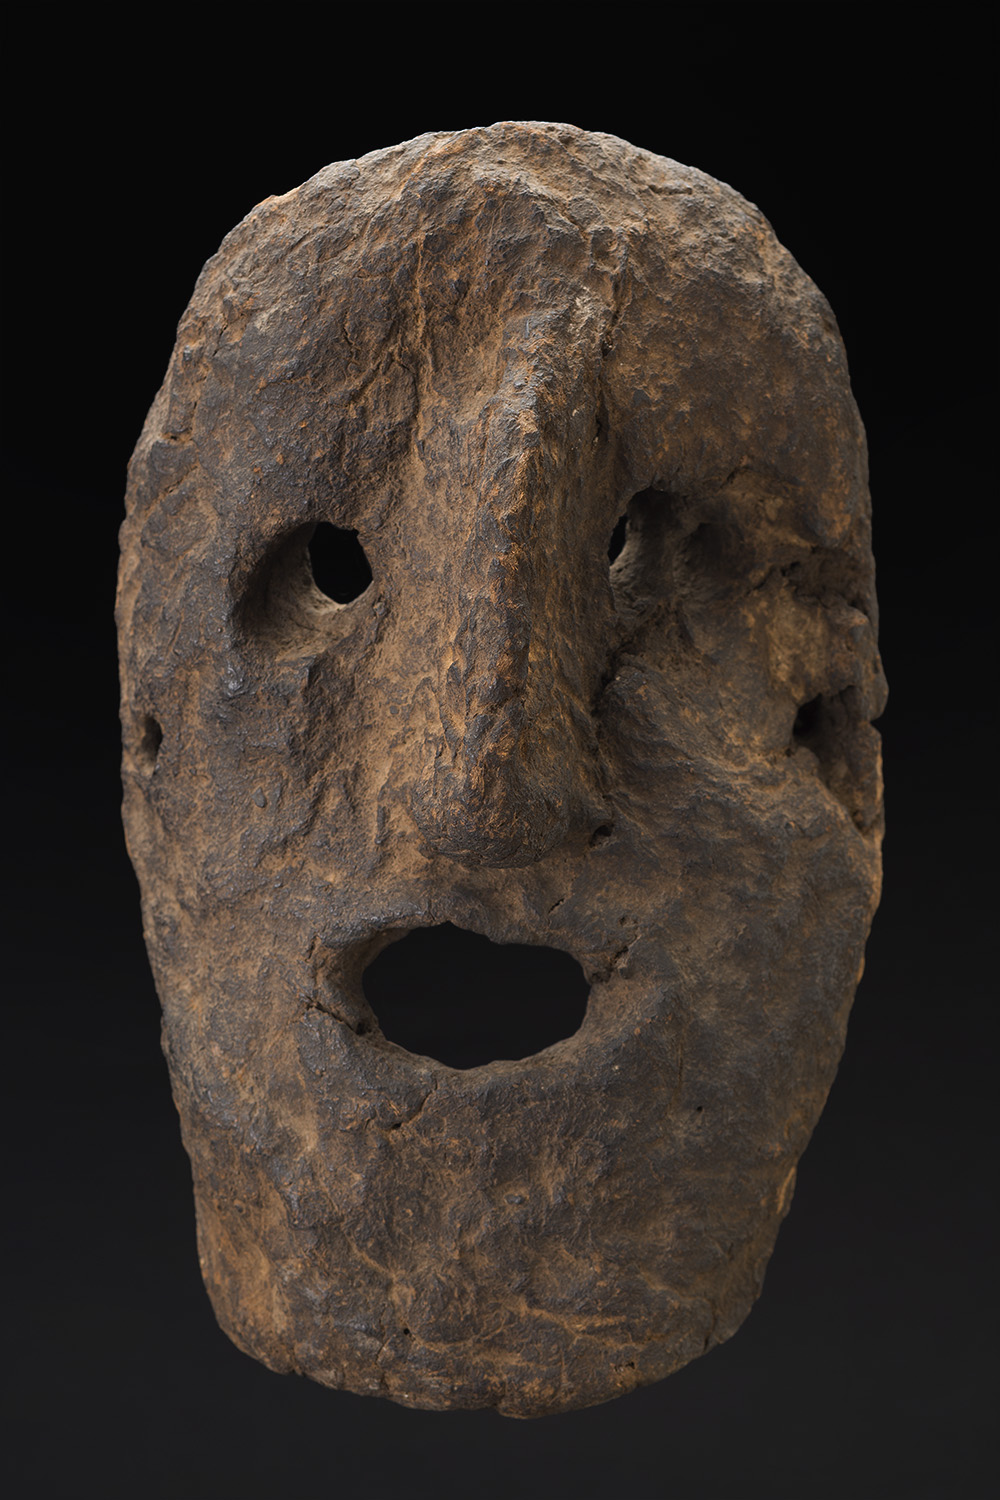 Masks    Nepal  , Mid 20th C. Cow dung, clay, organic materials 11.5 x 7 x 4 inches 29.2 x 17.8 x 10.2 cm M 201